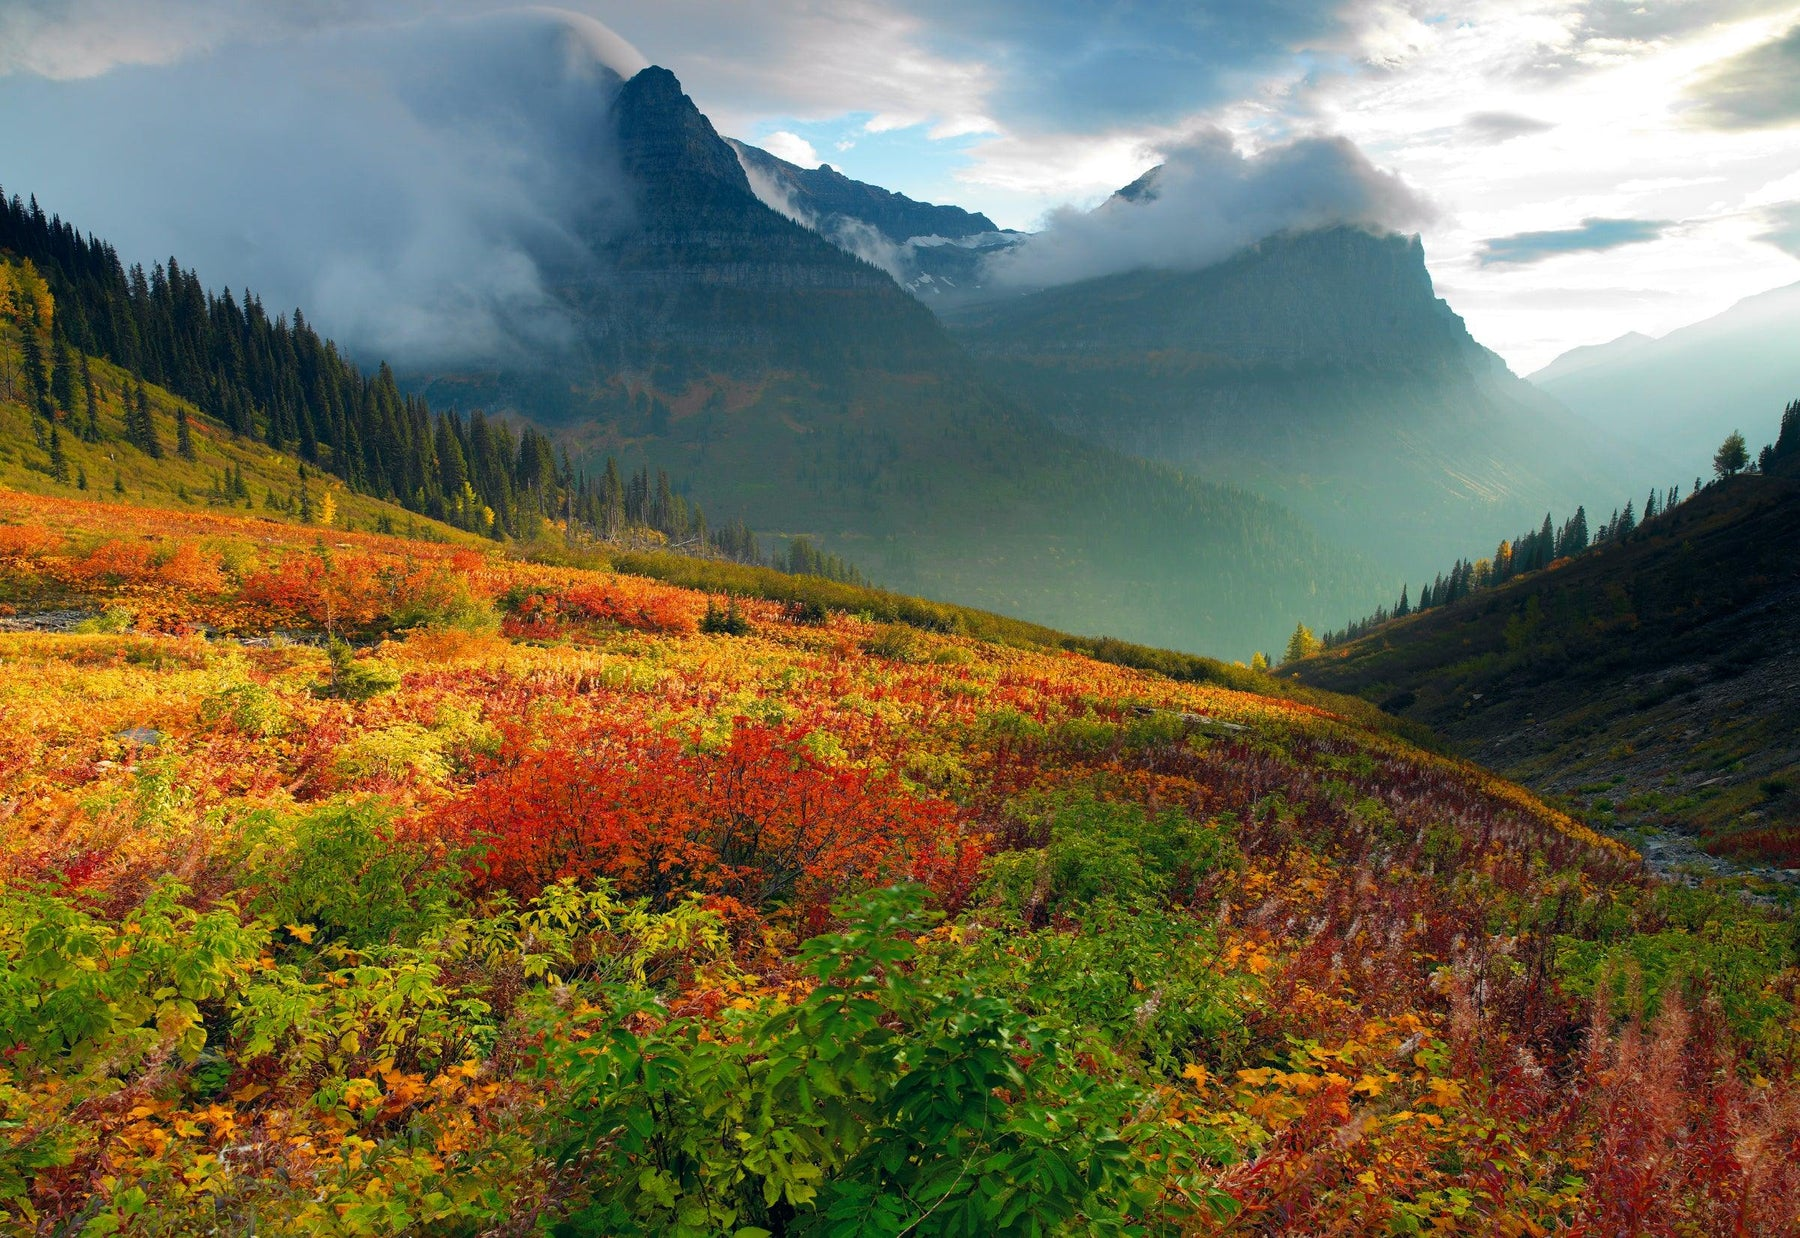 Sun shining on a colorful hill of plants with cloud covered mountains in back at Glacier National Park Montana